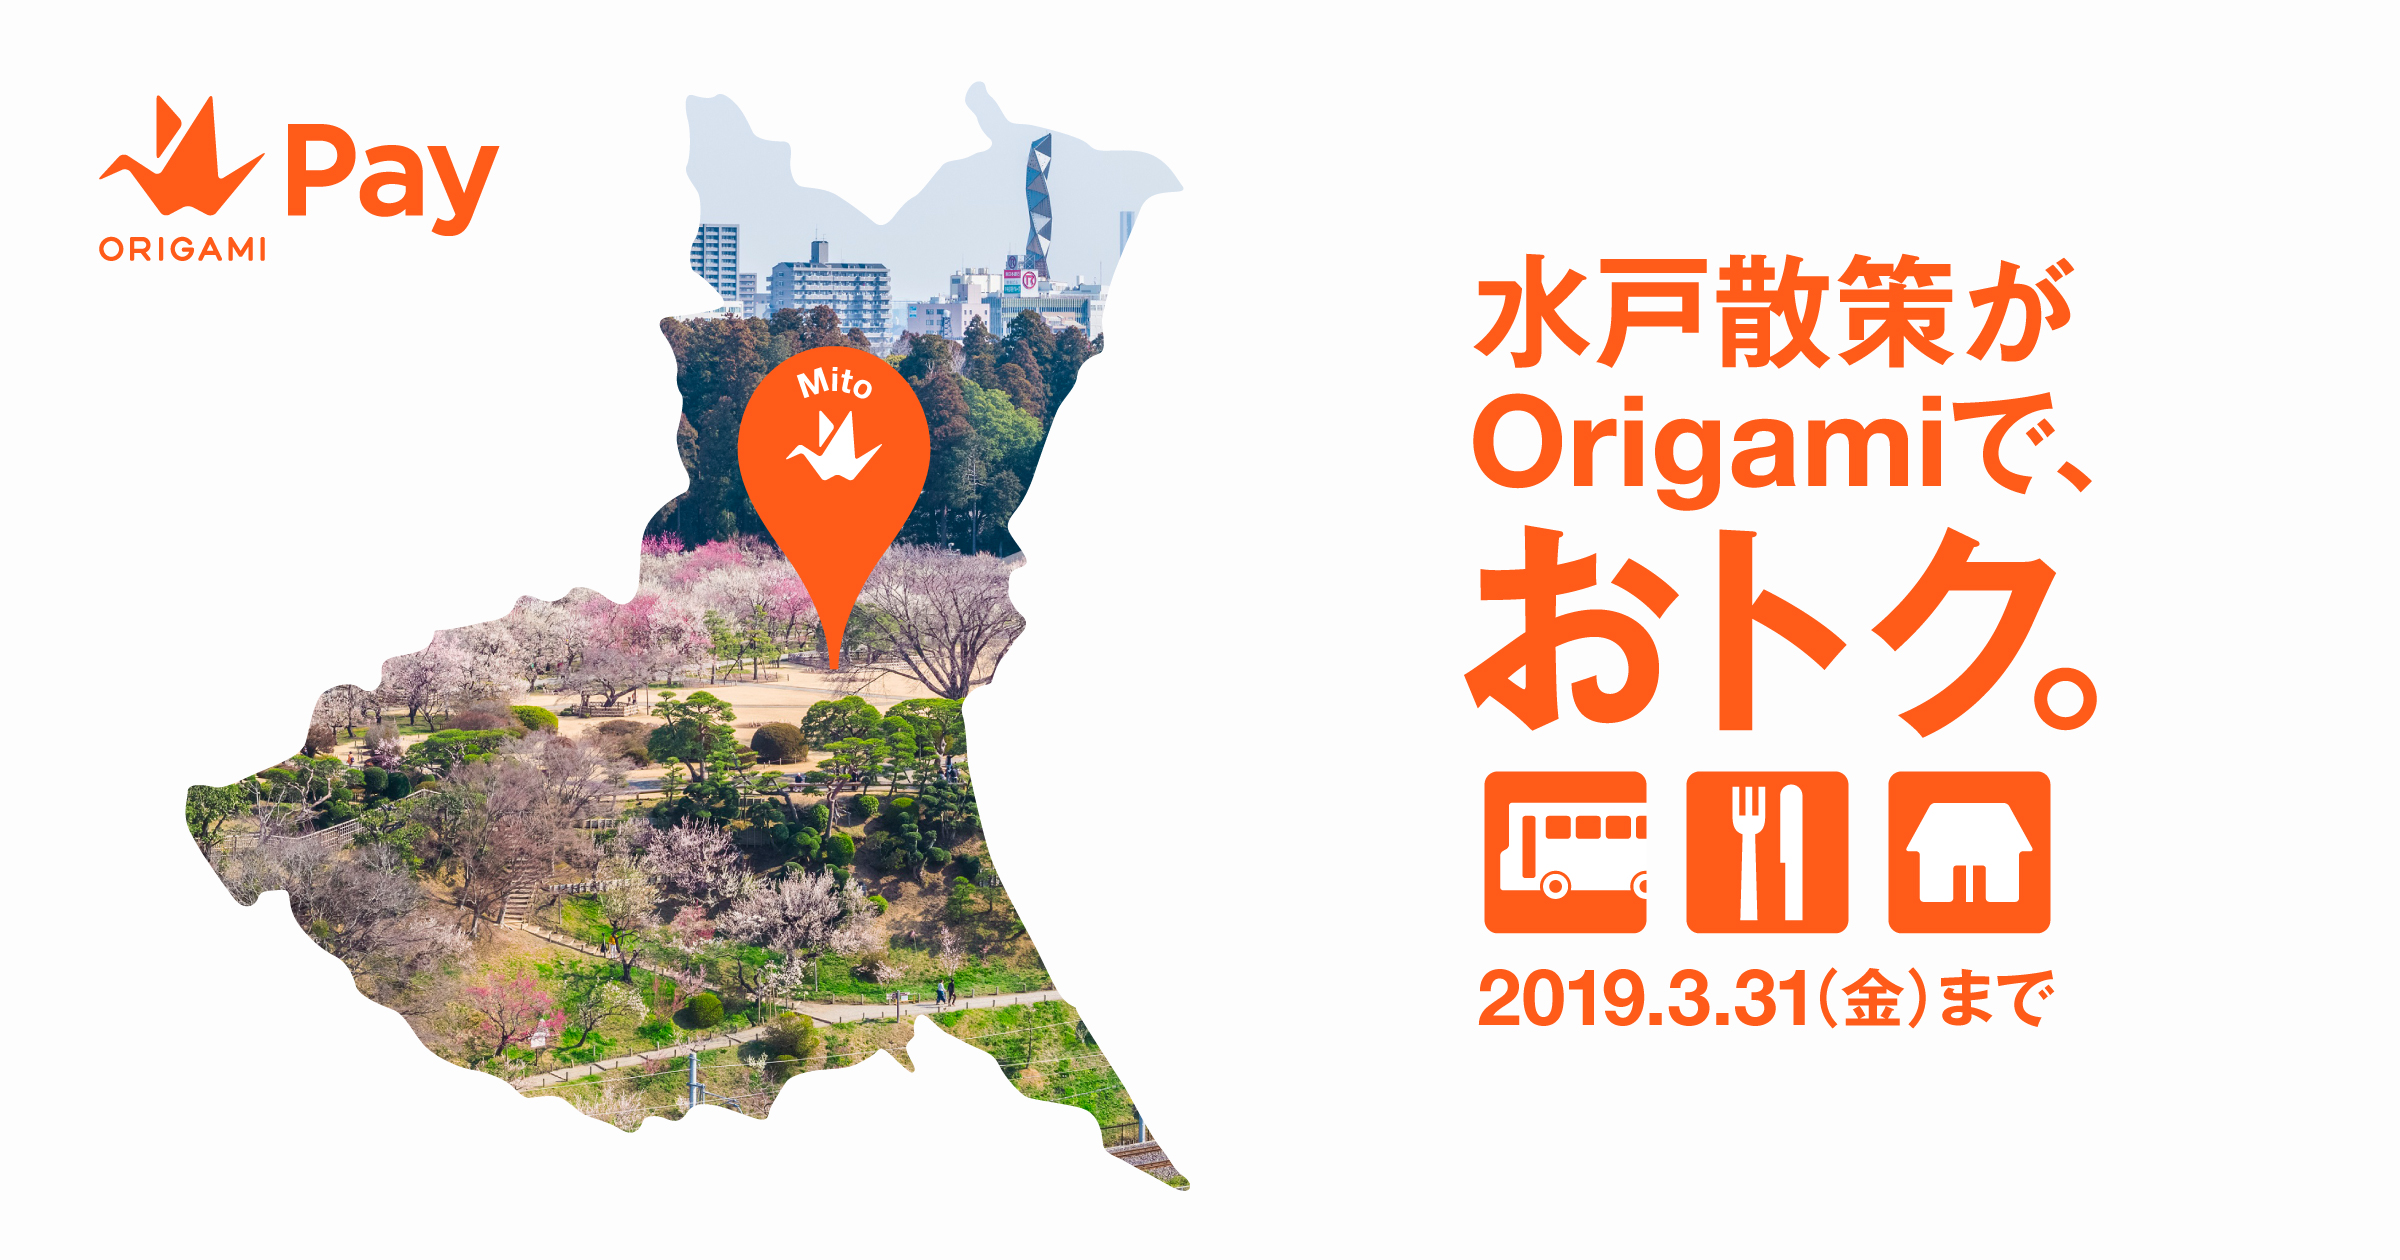 OrigamiPayで水戸市散策が半額となるクーポンを配信中。2/16~3/31。